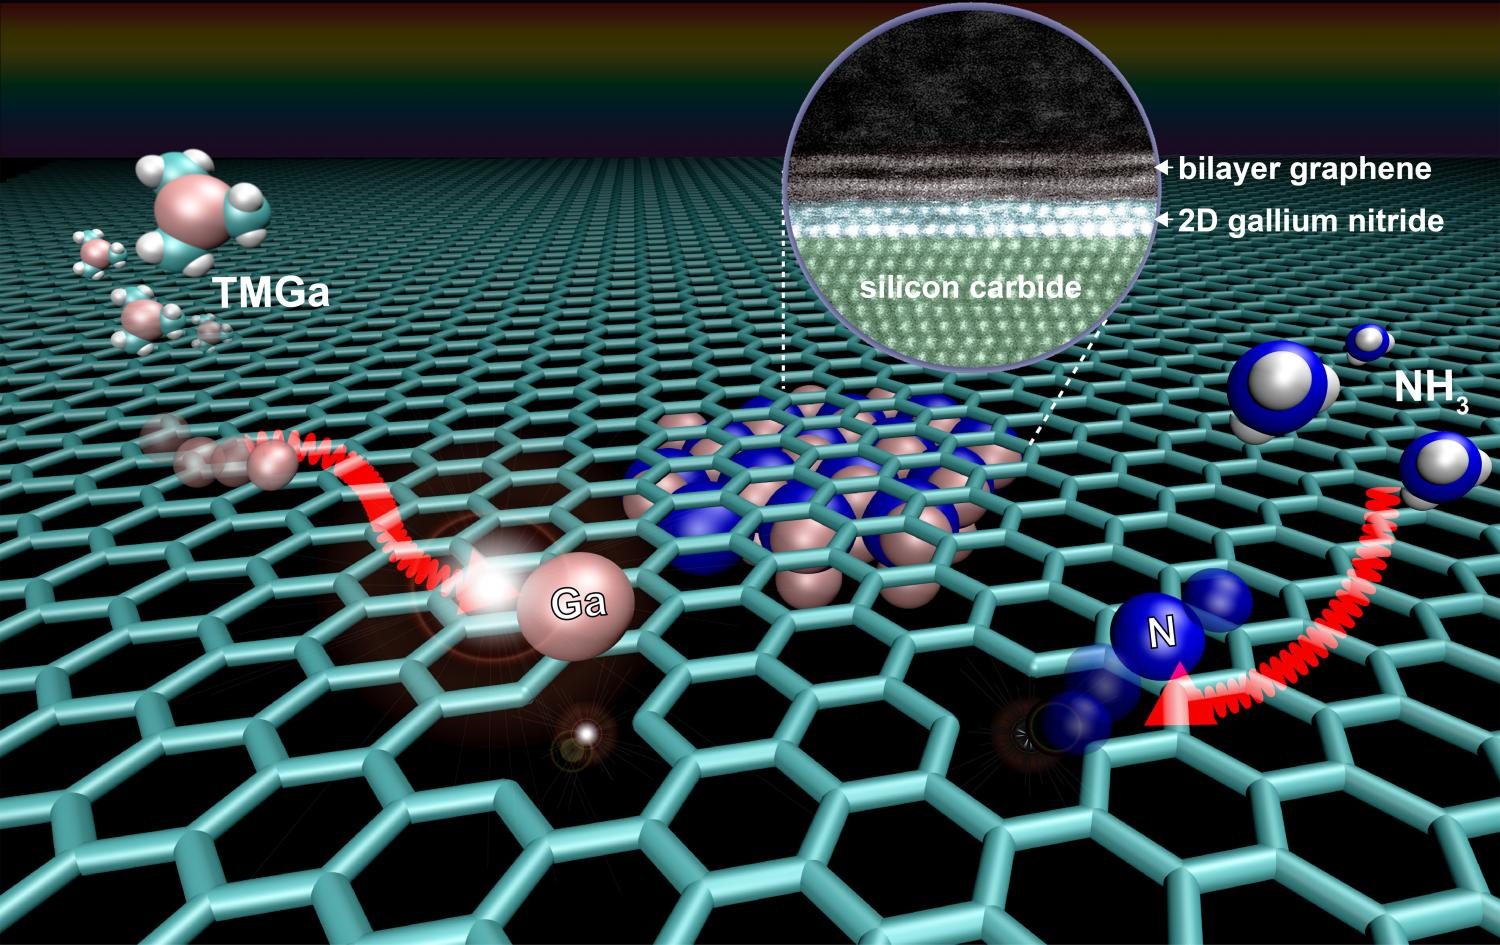 graphene key to growing 2 d semiconductor with